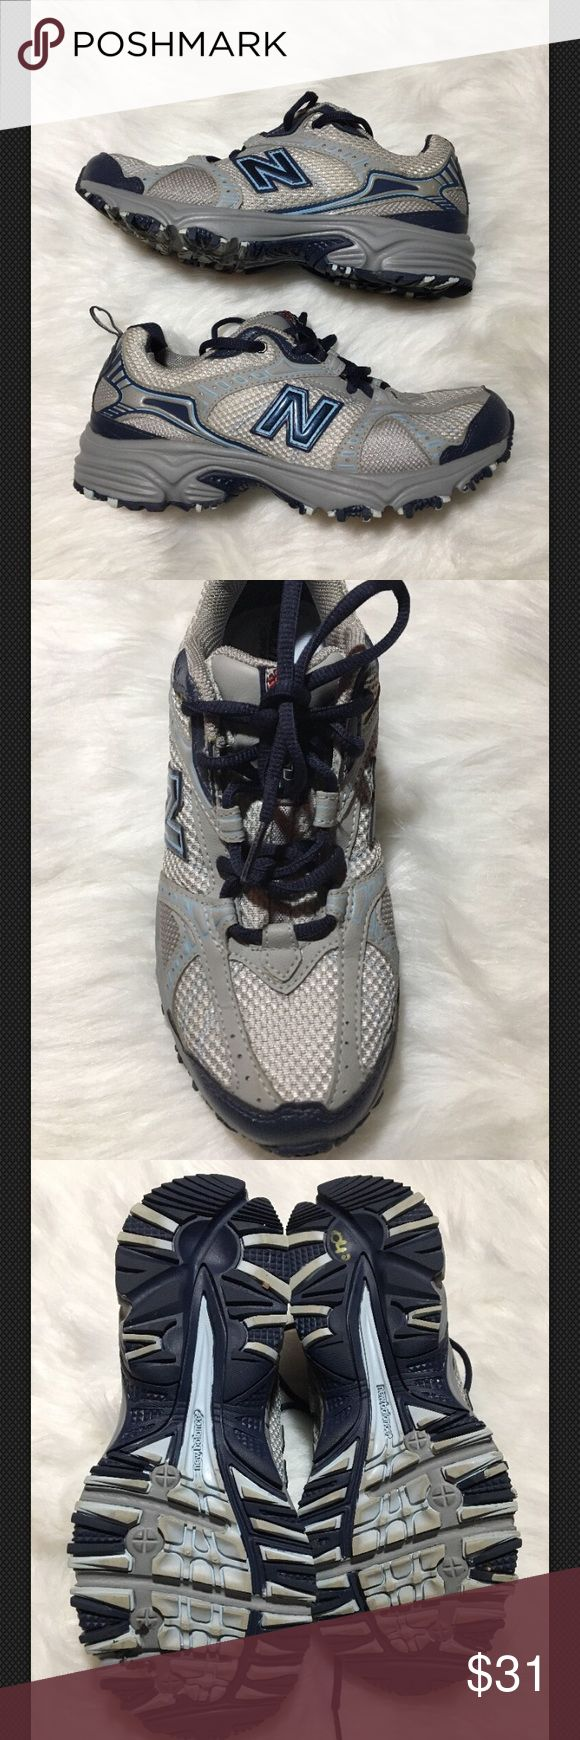 New Balance 461 All Terrain Running Sneakers 7.5 New Balance  461 All Terrain Running Sneakers Shoes Gray Blue  Wms 7 1/2 B  Trail Running style Good used condition. Ultra soft comfort insert footbed. New Balance Shoes Sneakers